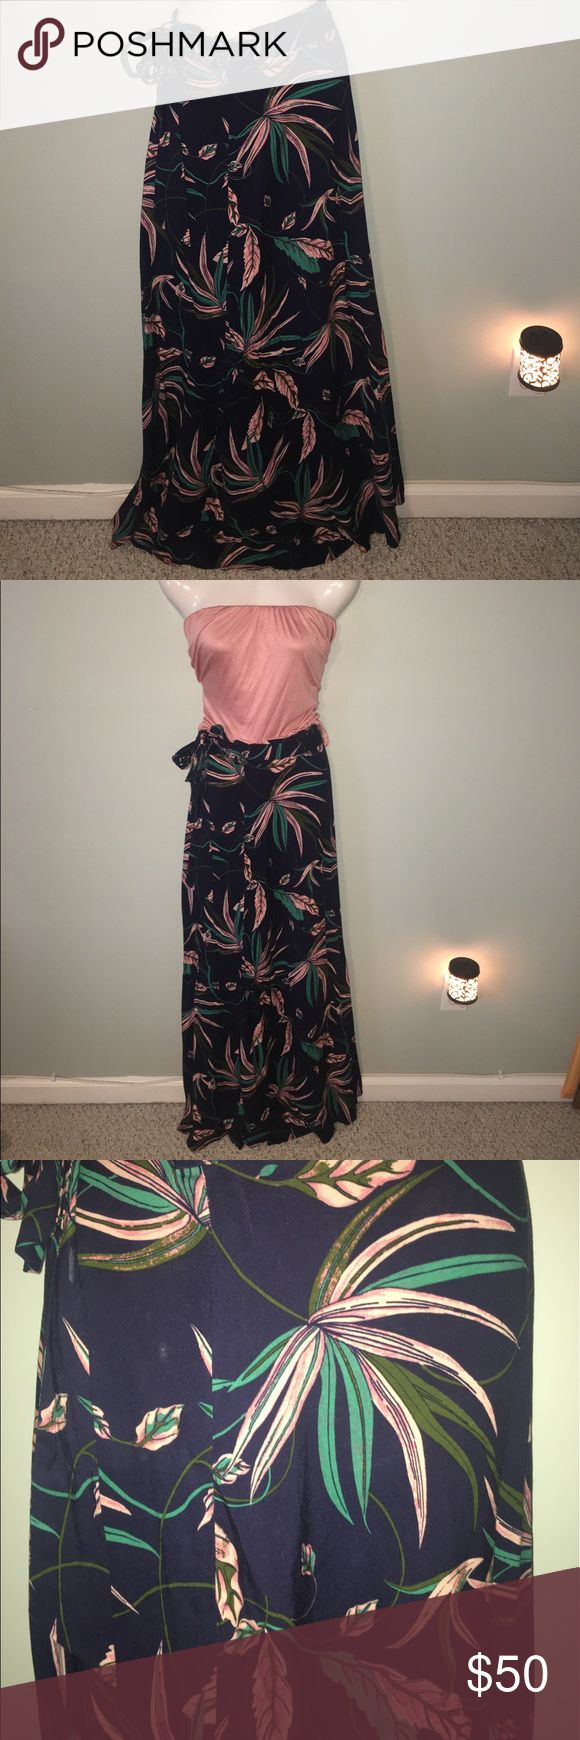 #Gorgeous #Floral #Wrap #Maxi #Skirt S-XL 💥Flash #Gorgeous #Floral #Wrap #Maxi #Skirt M-XL #Soft Adjustable sarong type Waist. Navy blue soft background to blush and minty green leaves. Just gorgeous and unique. Nowhere to be found ever again! Skirts Maxi